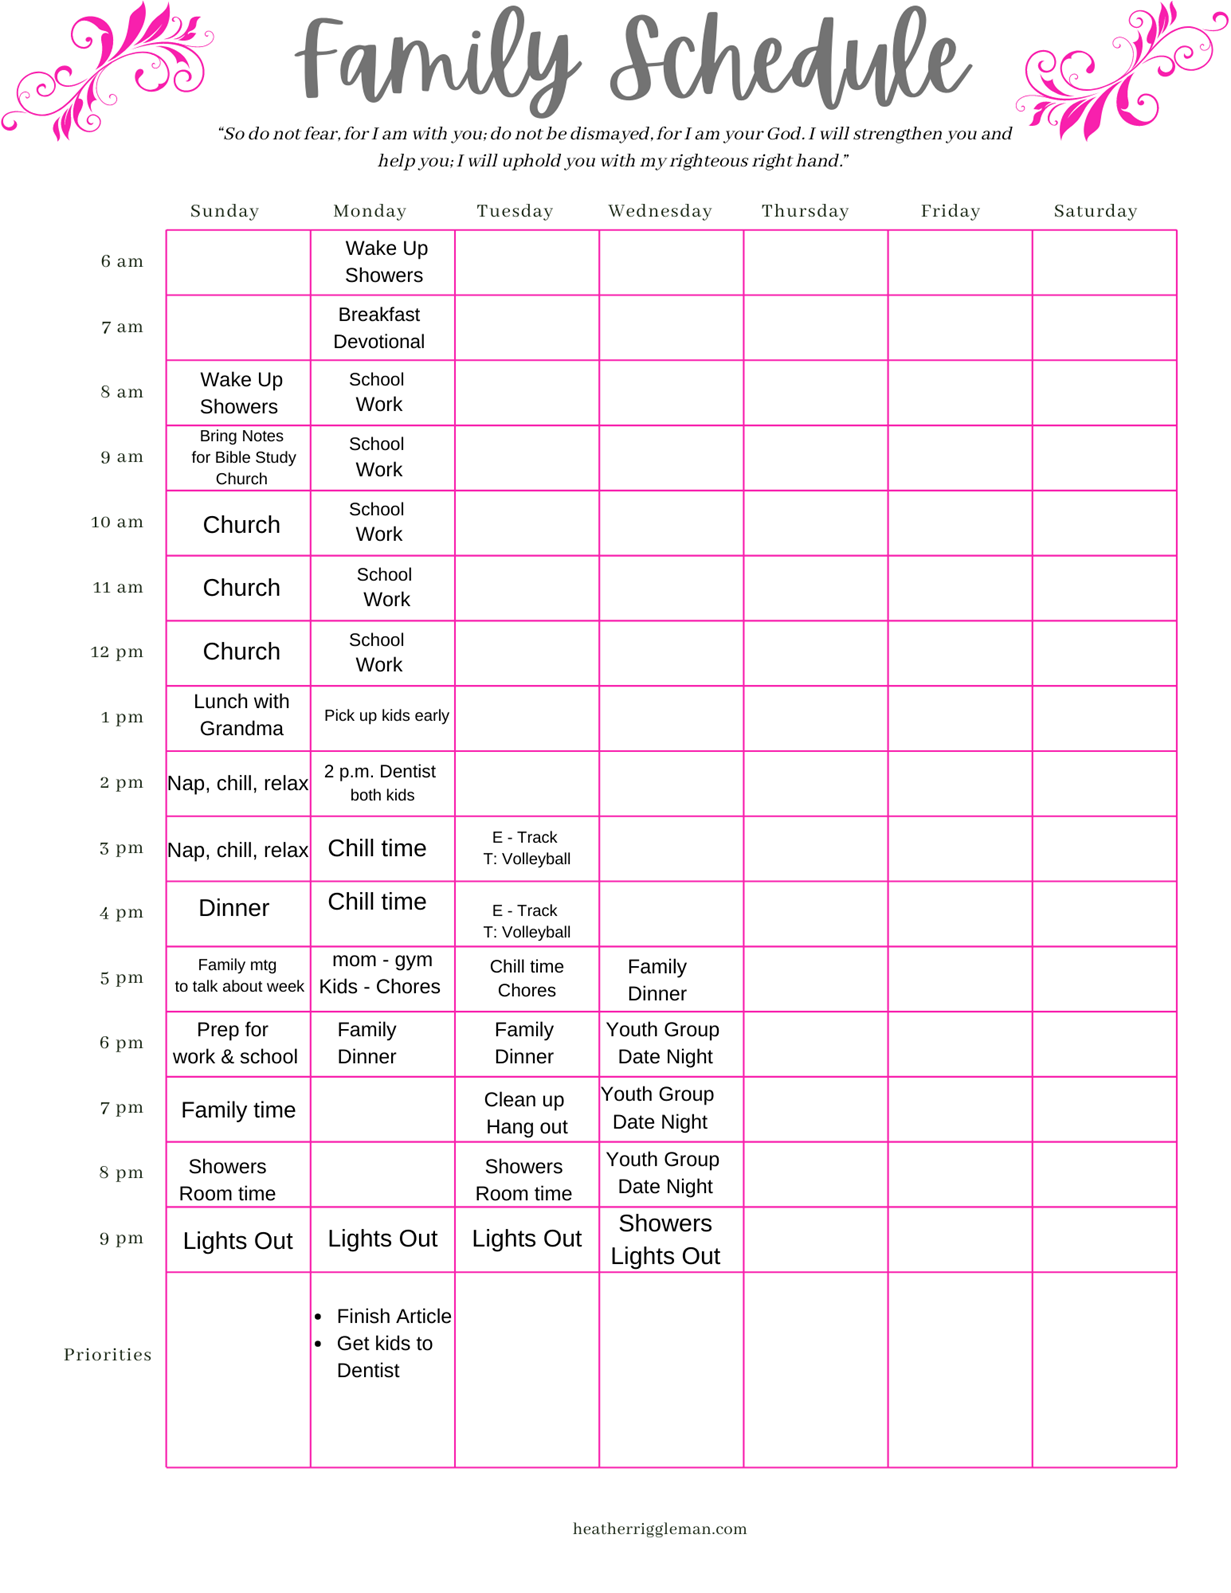 heather rigglemans family schedule